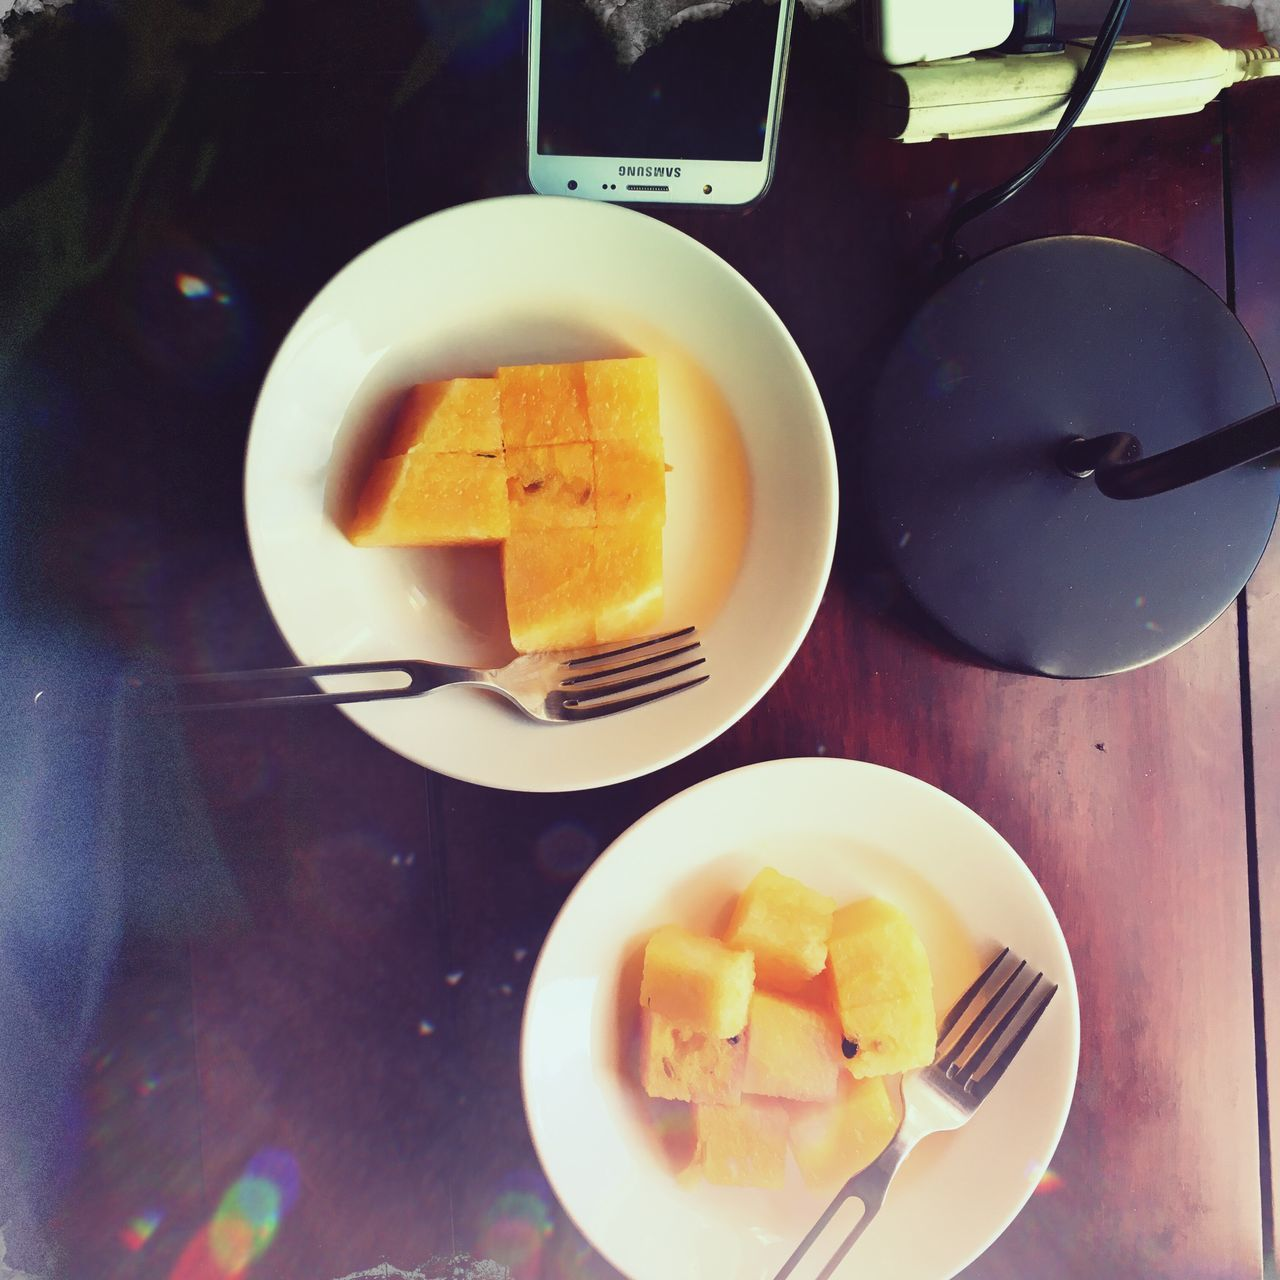 food and drink, plate, fork, food, table, indoors, fruit, freshness, slice, no people, sweet food, breakfast, healthy eating, close-up, ready-to-eat, day